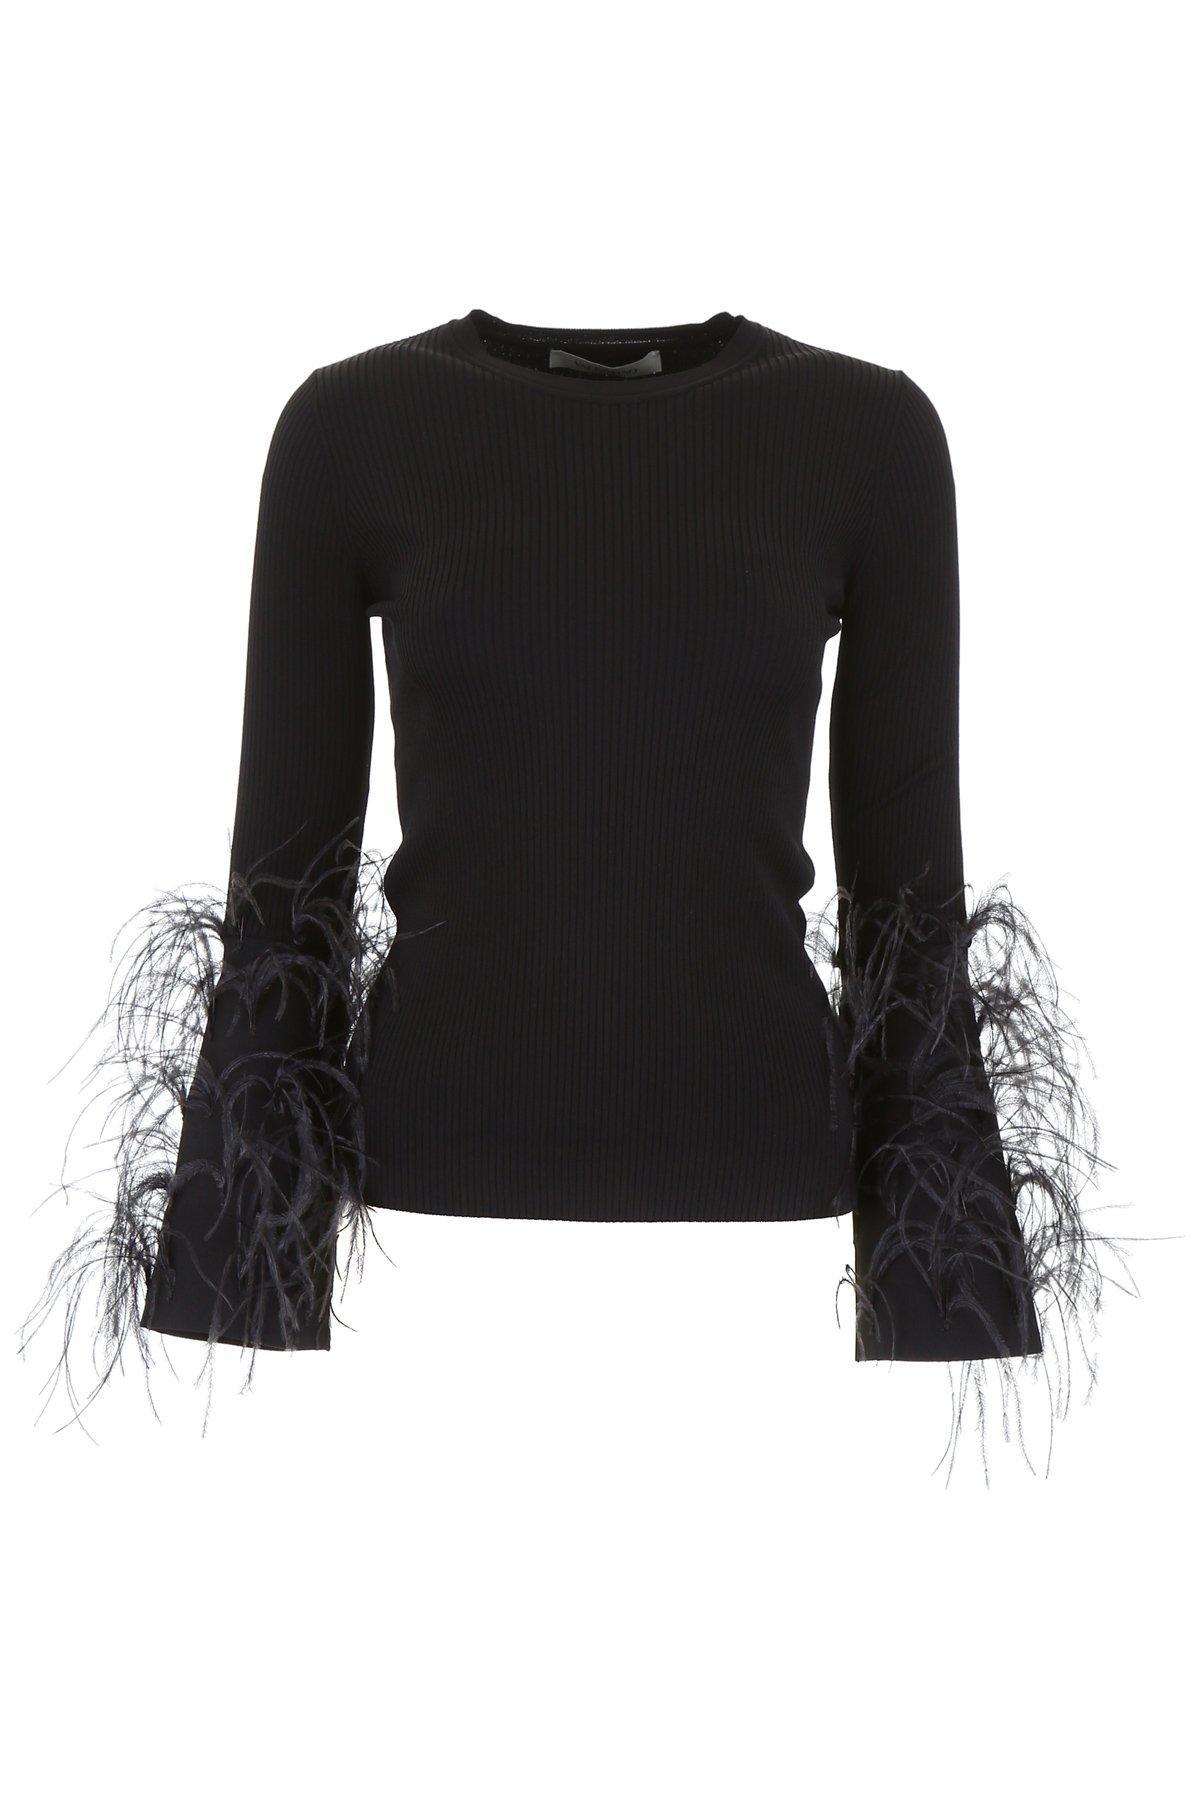 aeb4a23a372e6 Lyst - Valentino Ostrich Feather Embellished Jumper in Black